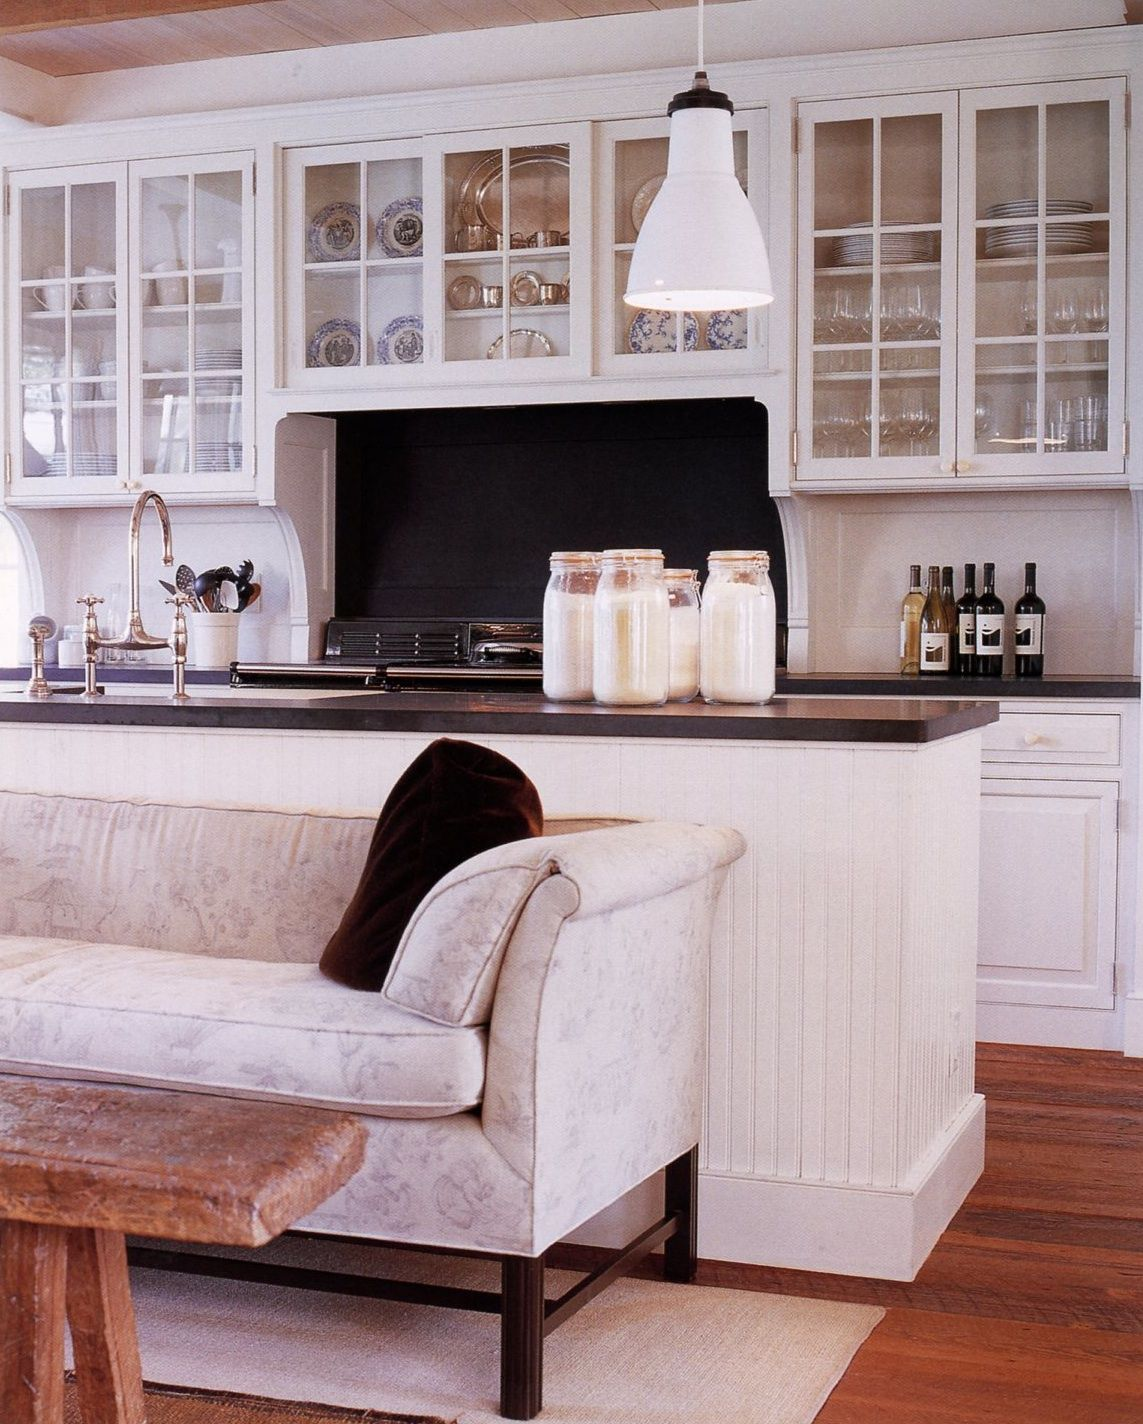 6 Tips For A Kitchen You Can Love For A Lifetime: Open Cabinets Above Range Sofa Next To Island A MOMENT